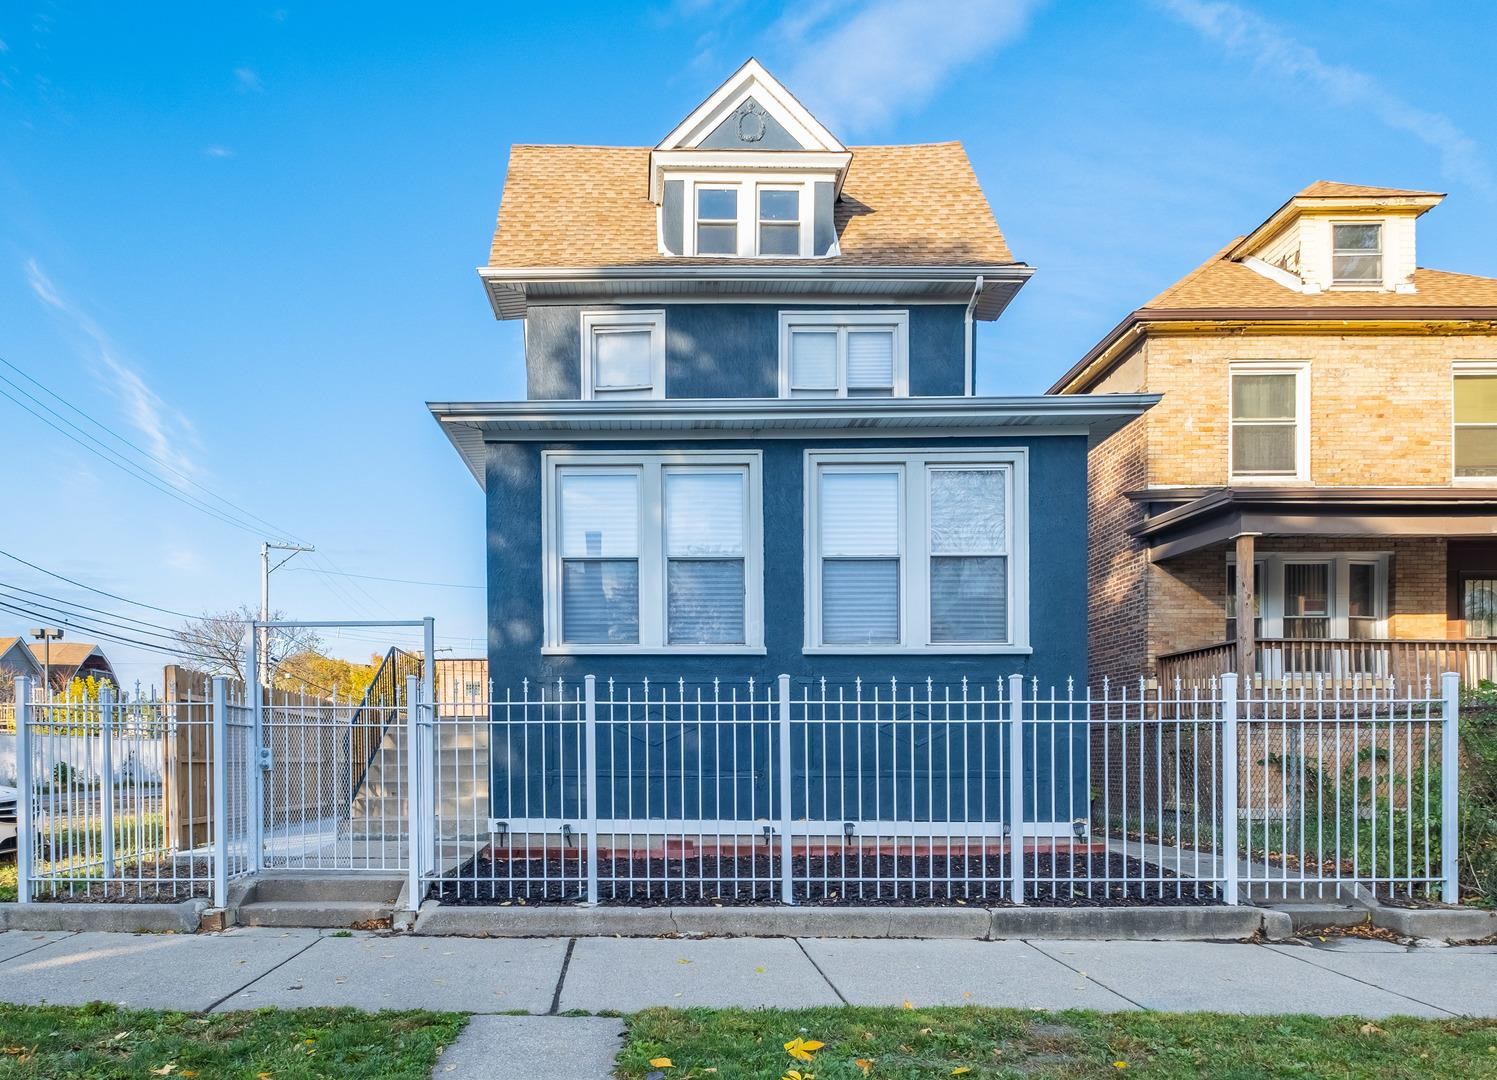 20 N Latrobe Avenue, Chicago, IL 60644 - #: 10913685